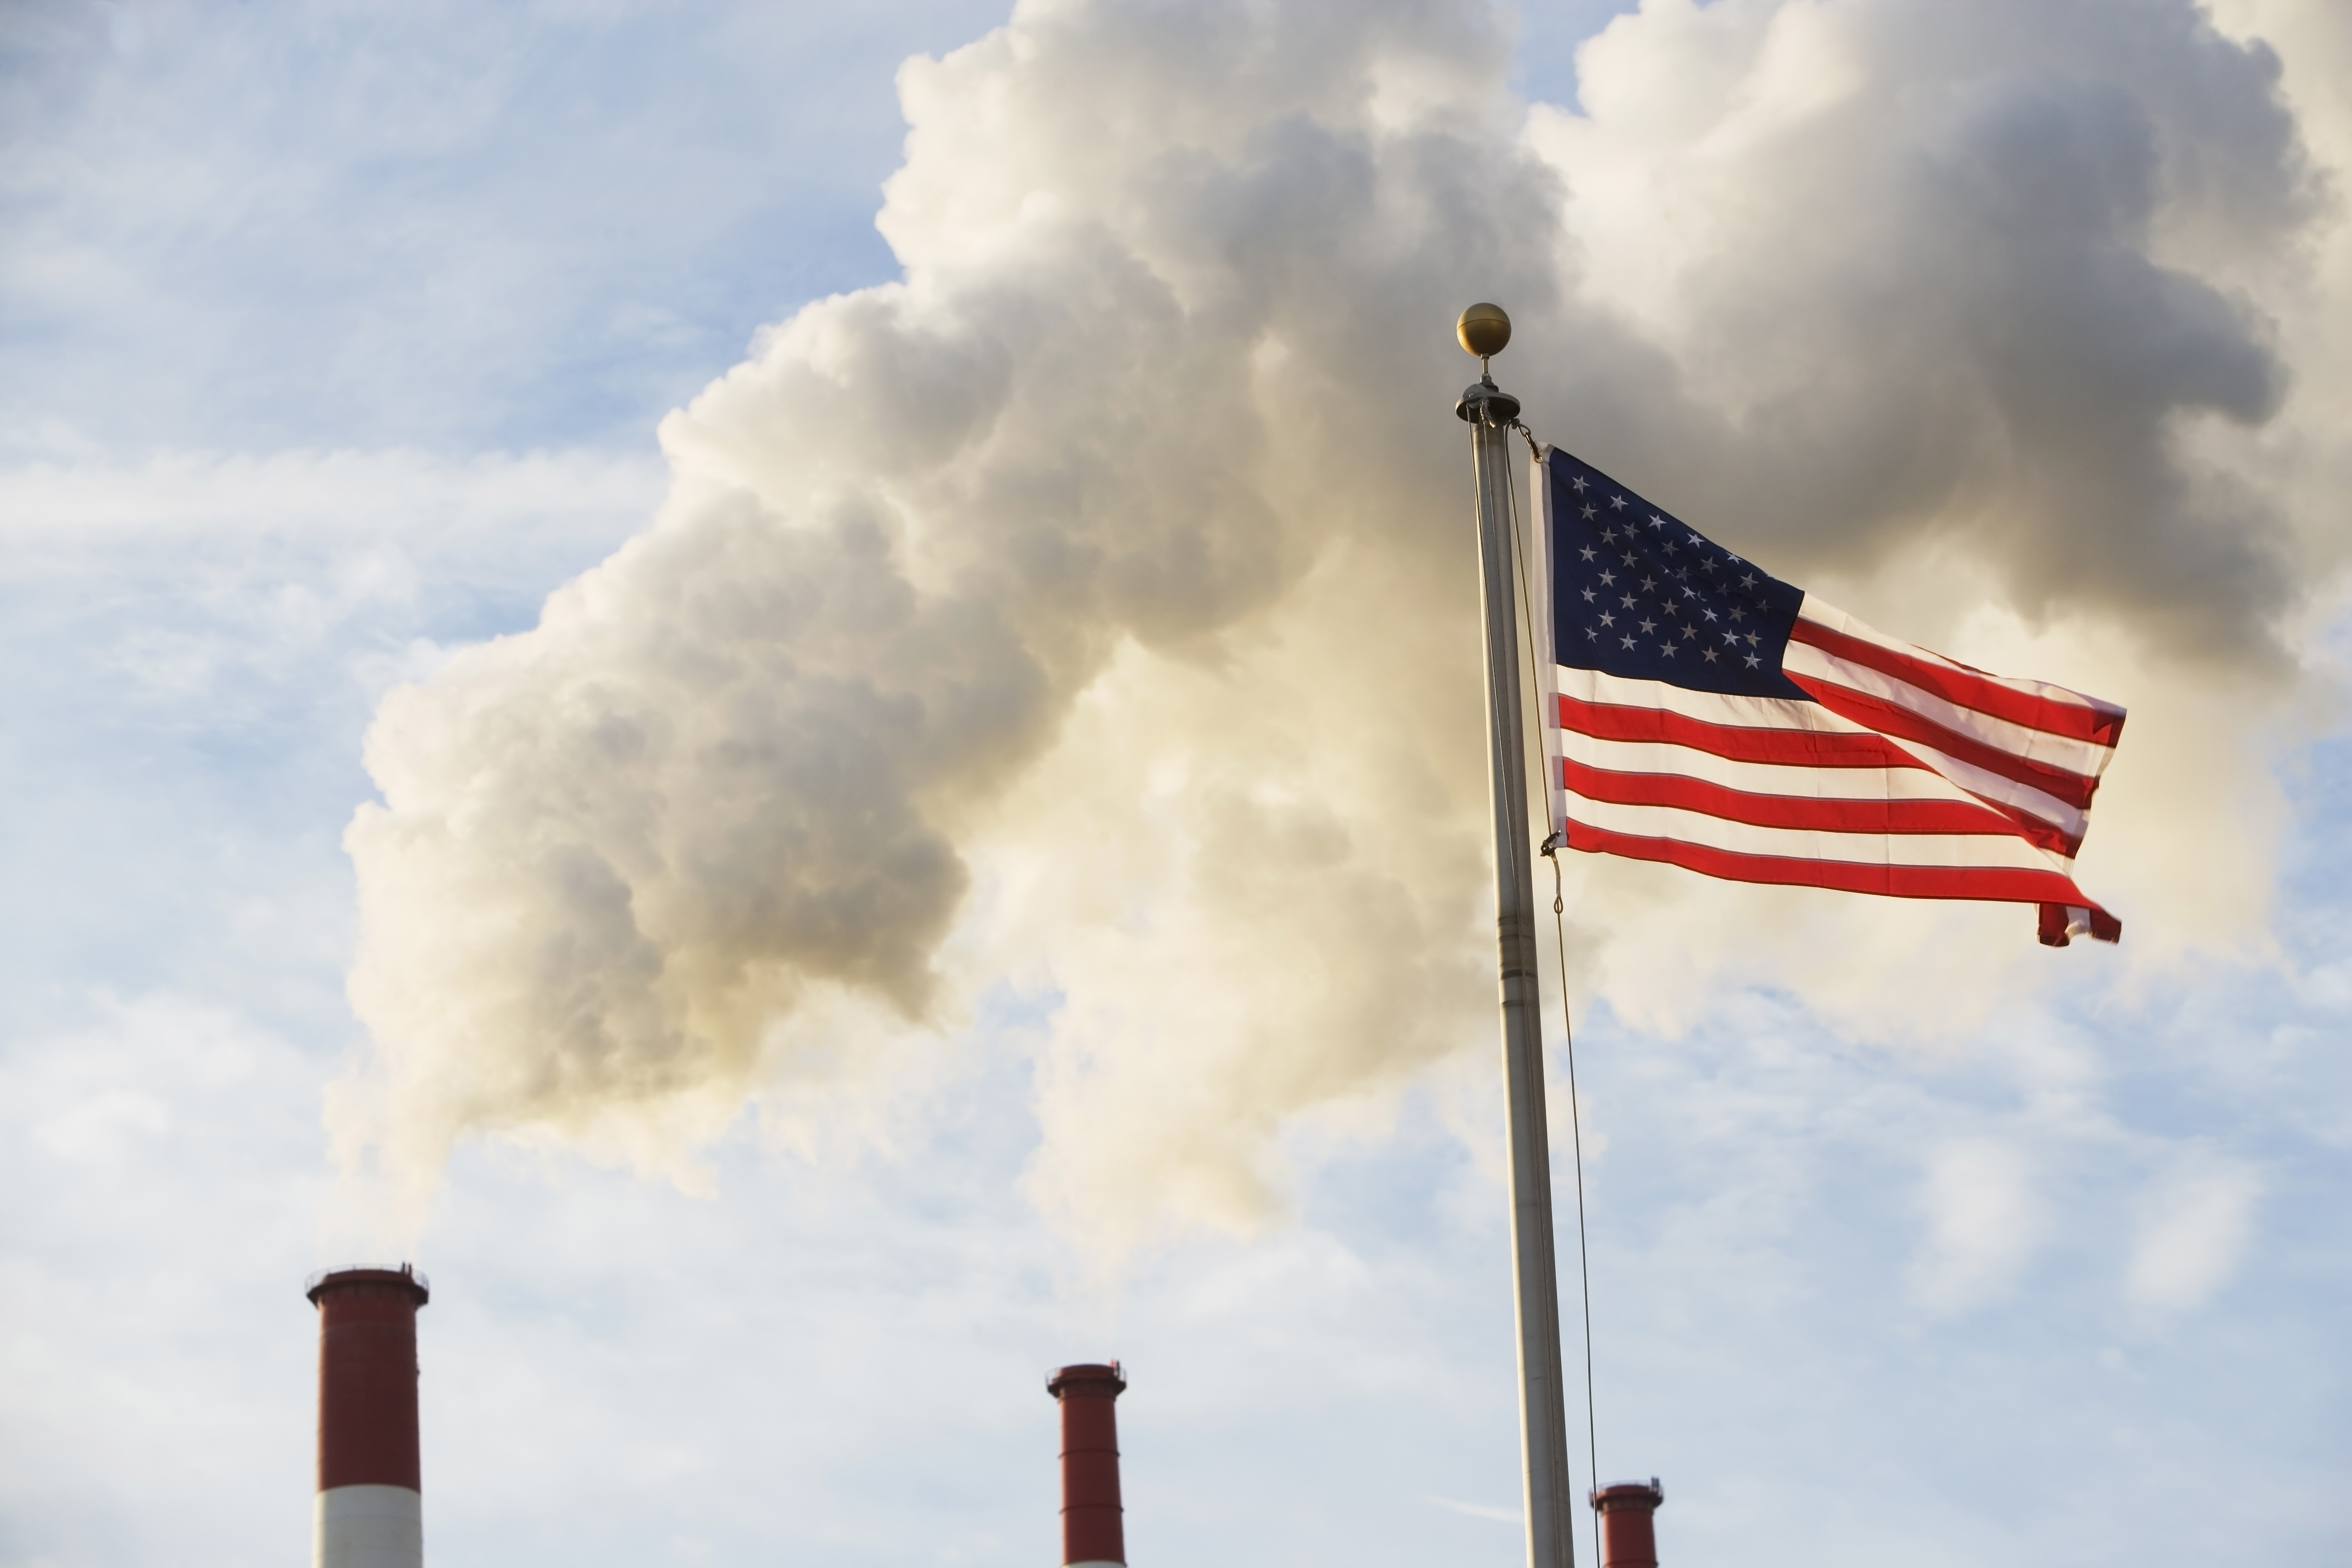 USA, New York State, New York City, American flag in front of smoke stacks